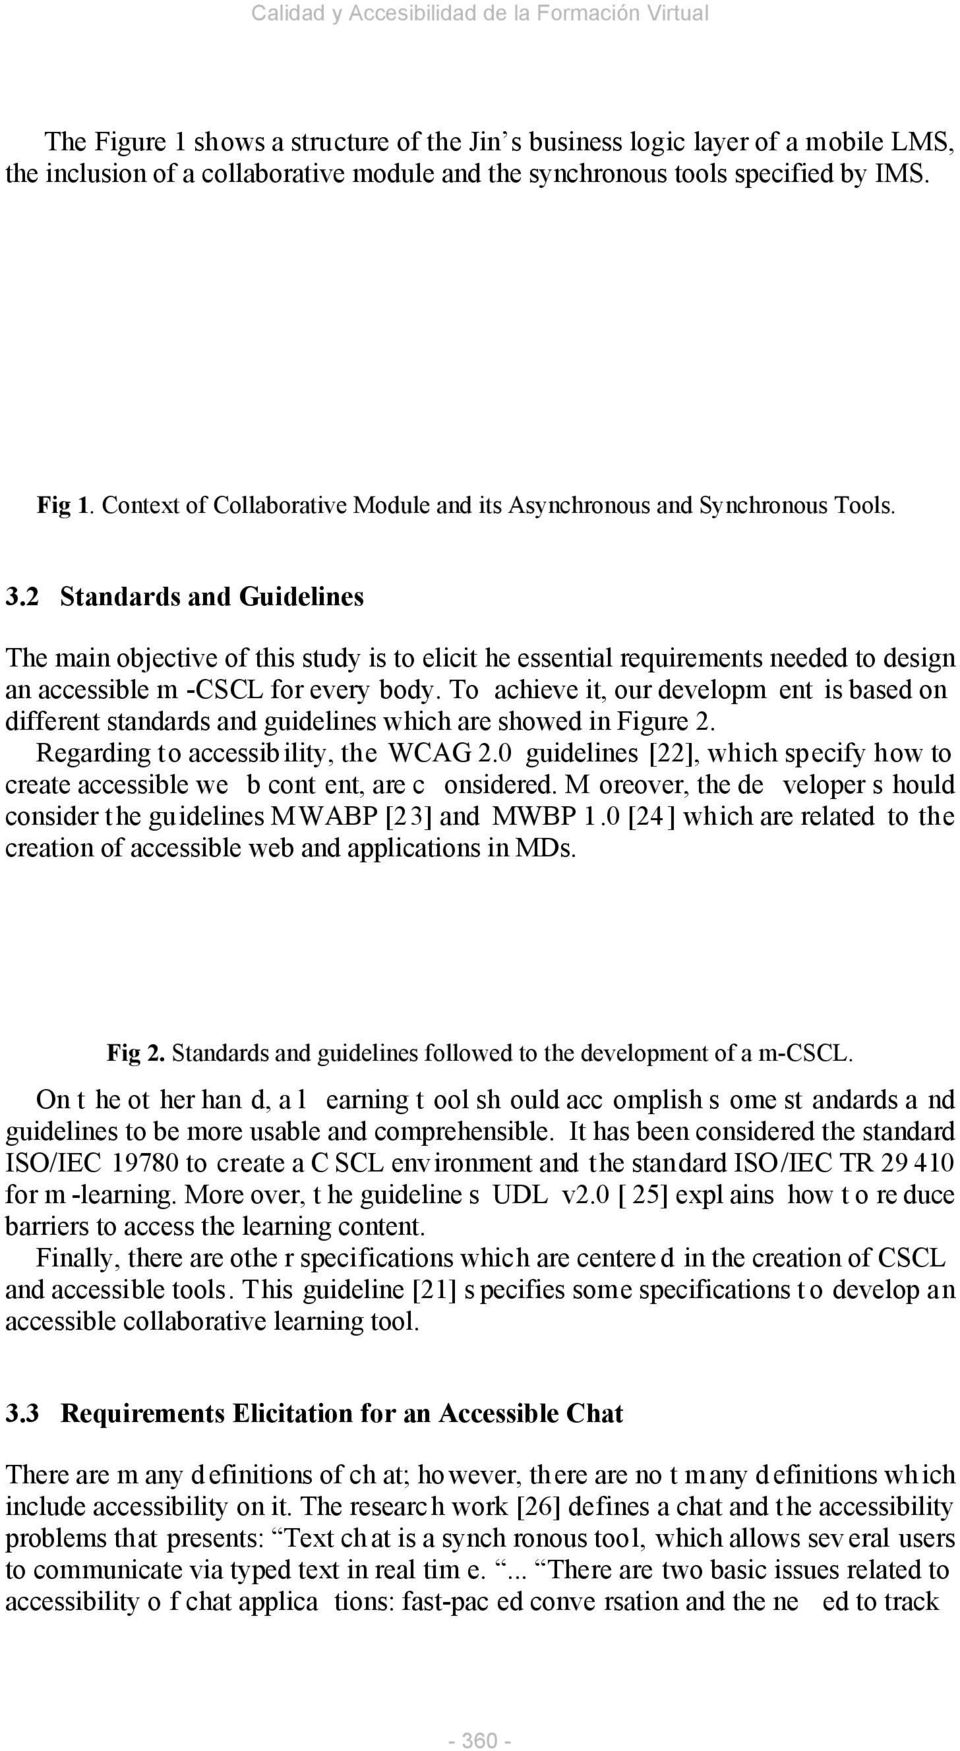 2 Standards and Guidelines The main objective of this study is to elicit he essential requirements needed to design an accessible m -CSCL for every body.